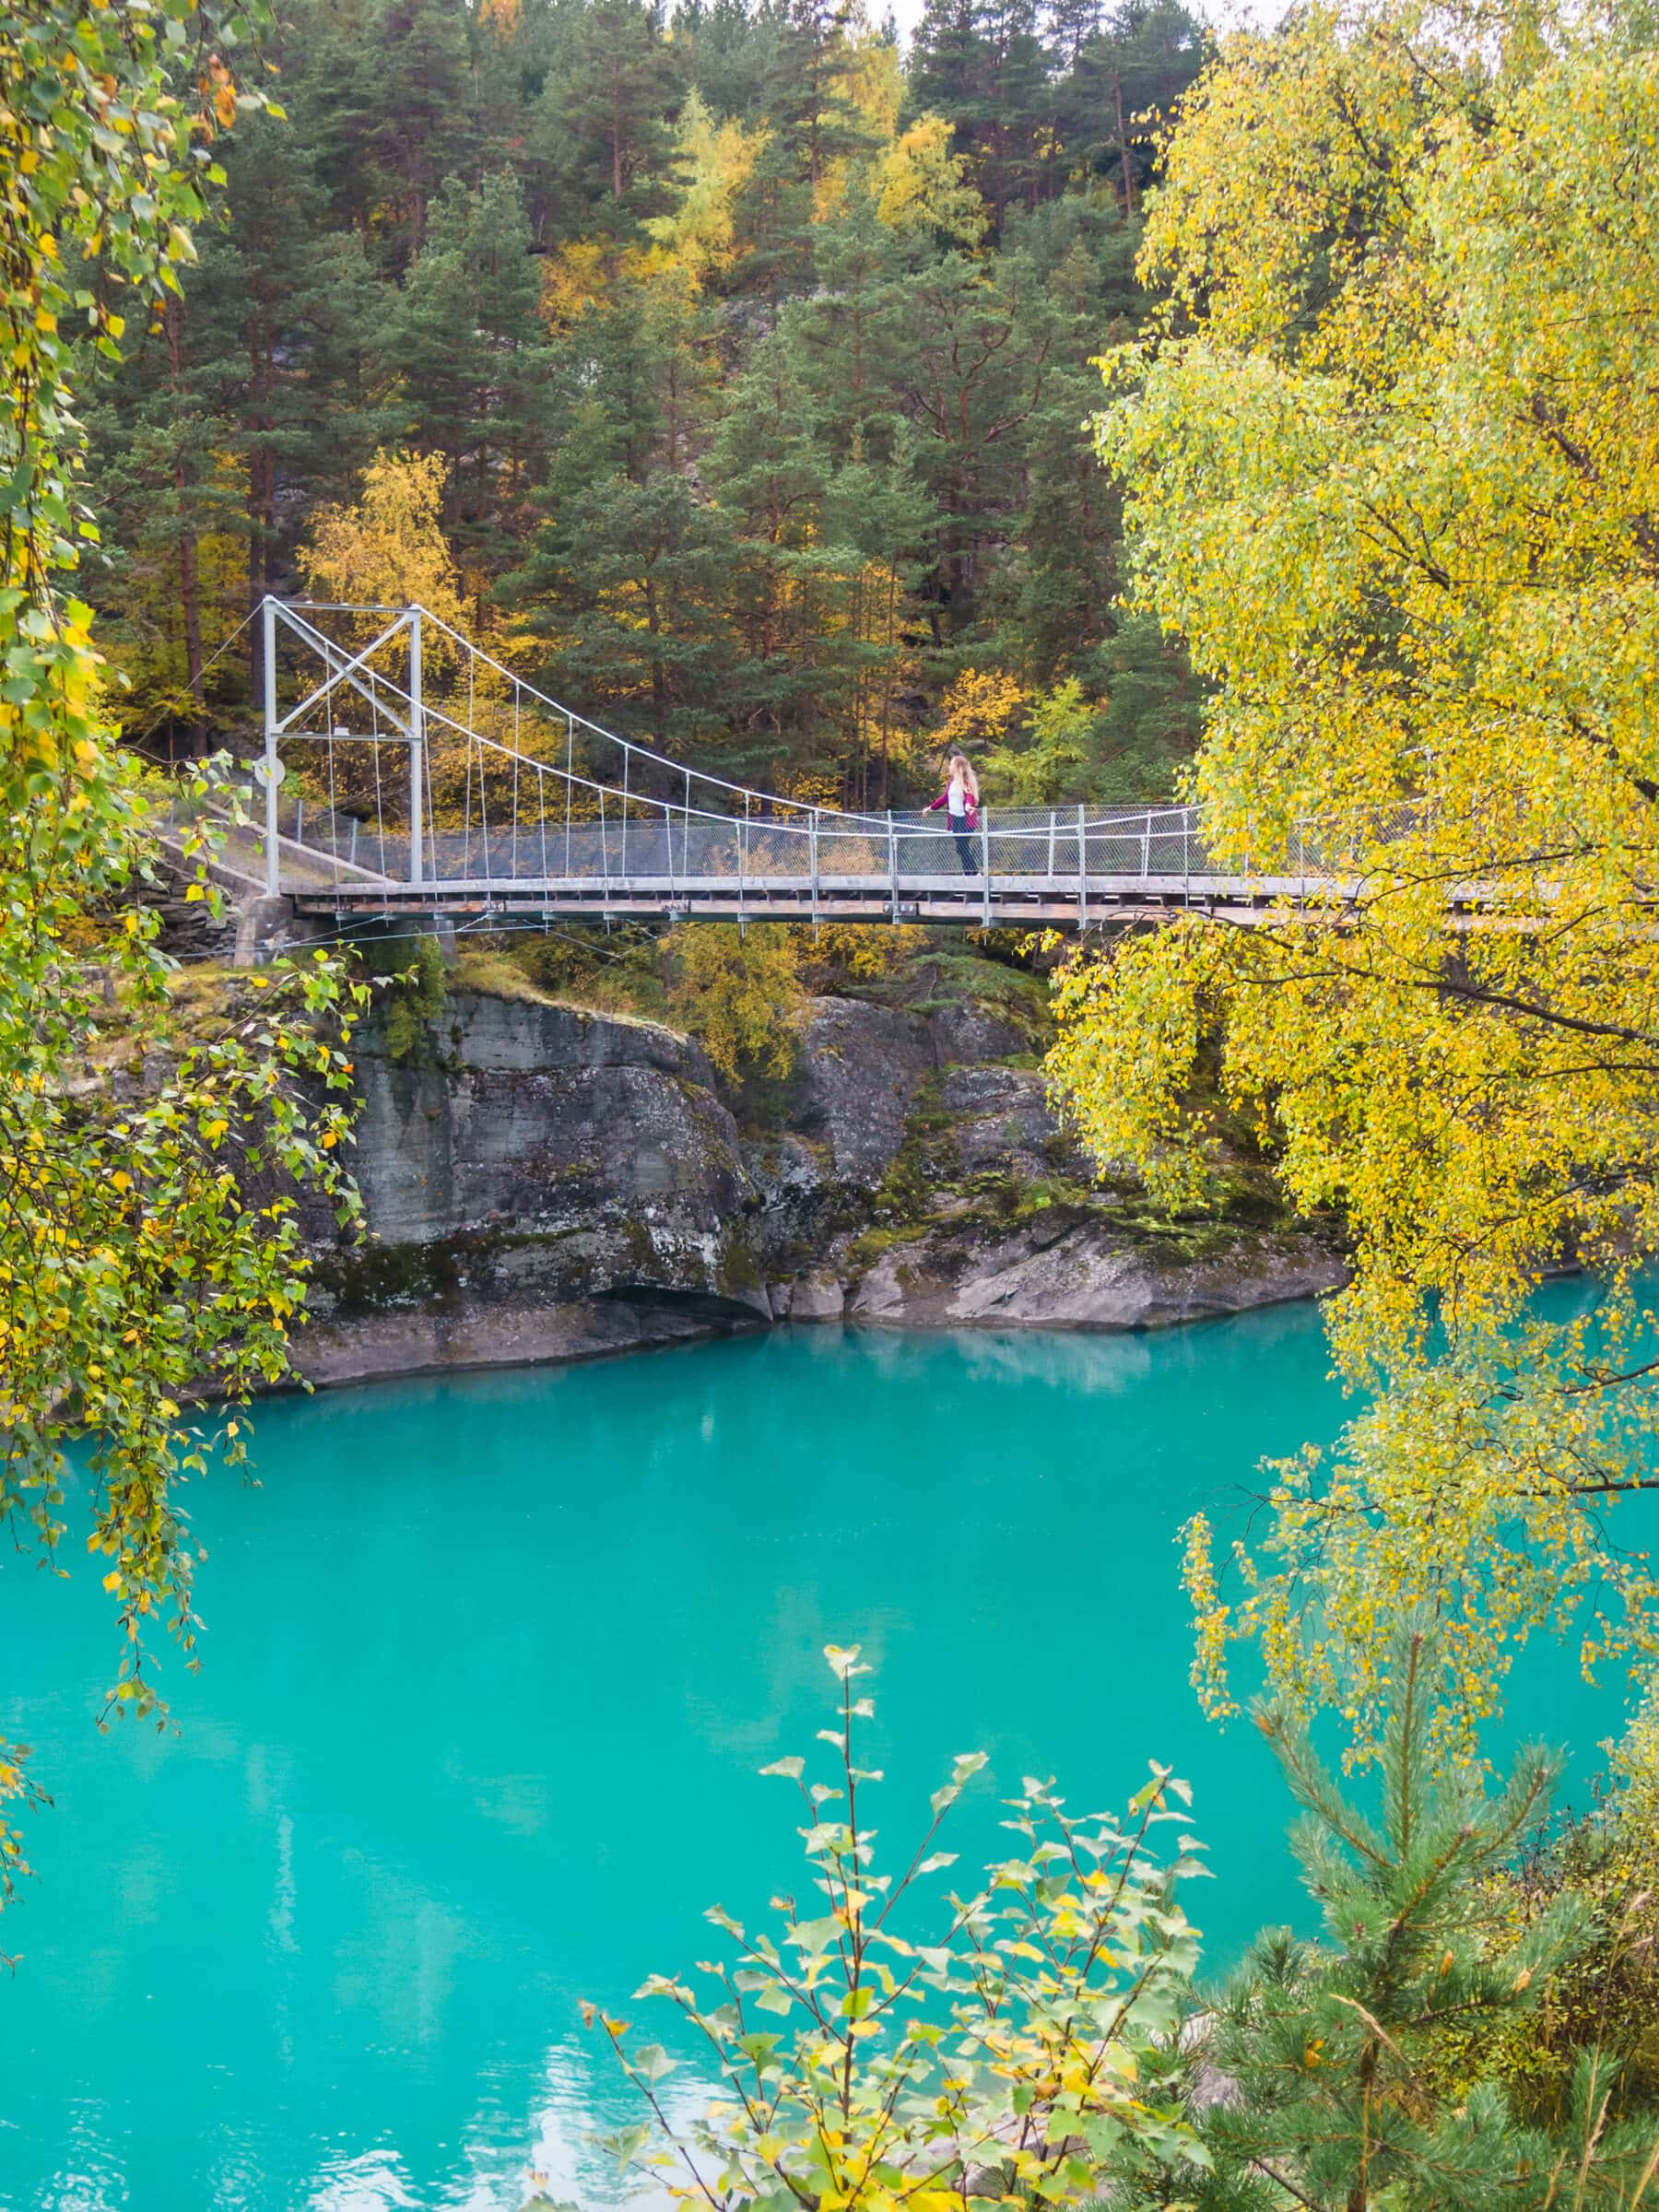 Gorgeous turquoise Finna river - Top things to do in Norway #bucketlist #norway #travelinspo #innlandet